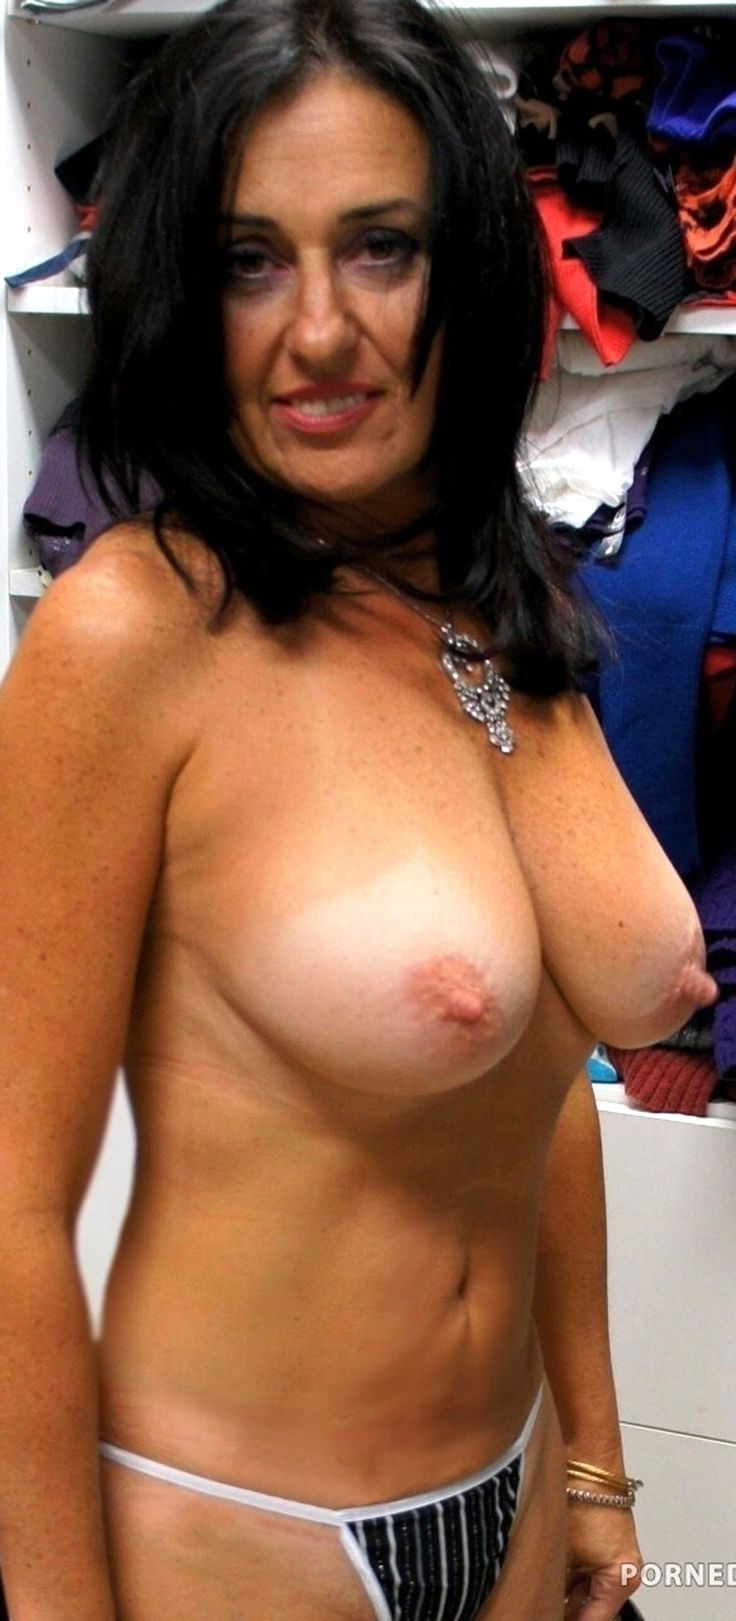 Ddd Mature Tits Simple 492 best mature images on pinterest | nudes, tall clothing and a